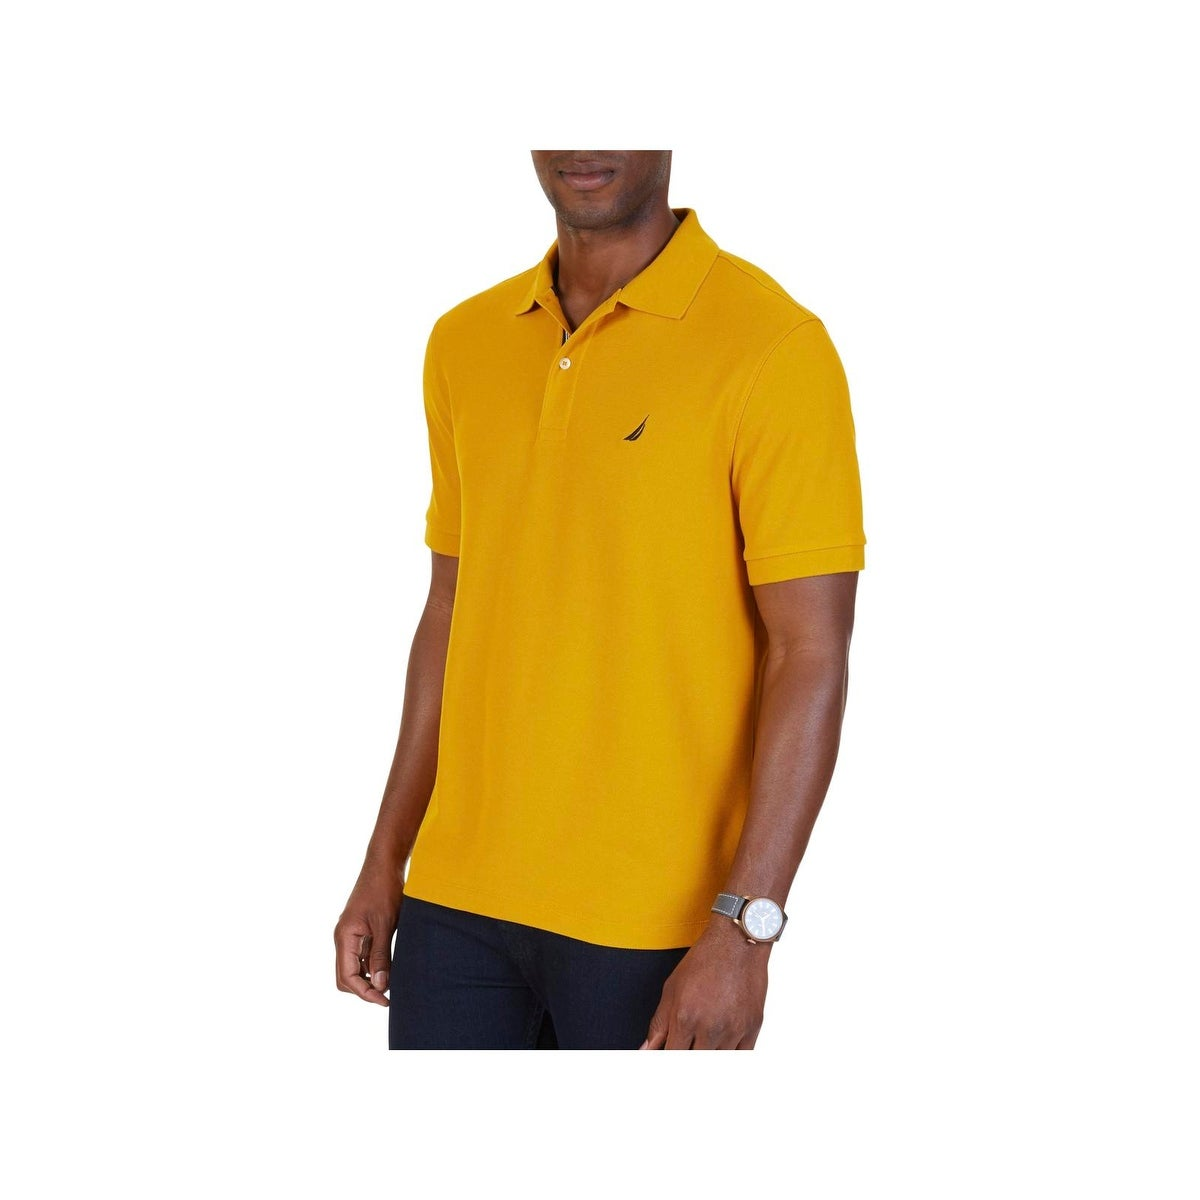 Polo Shirts For Sale In Bulk